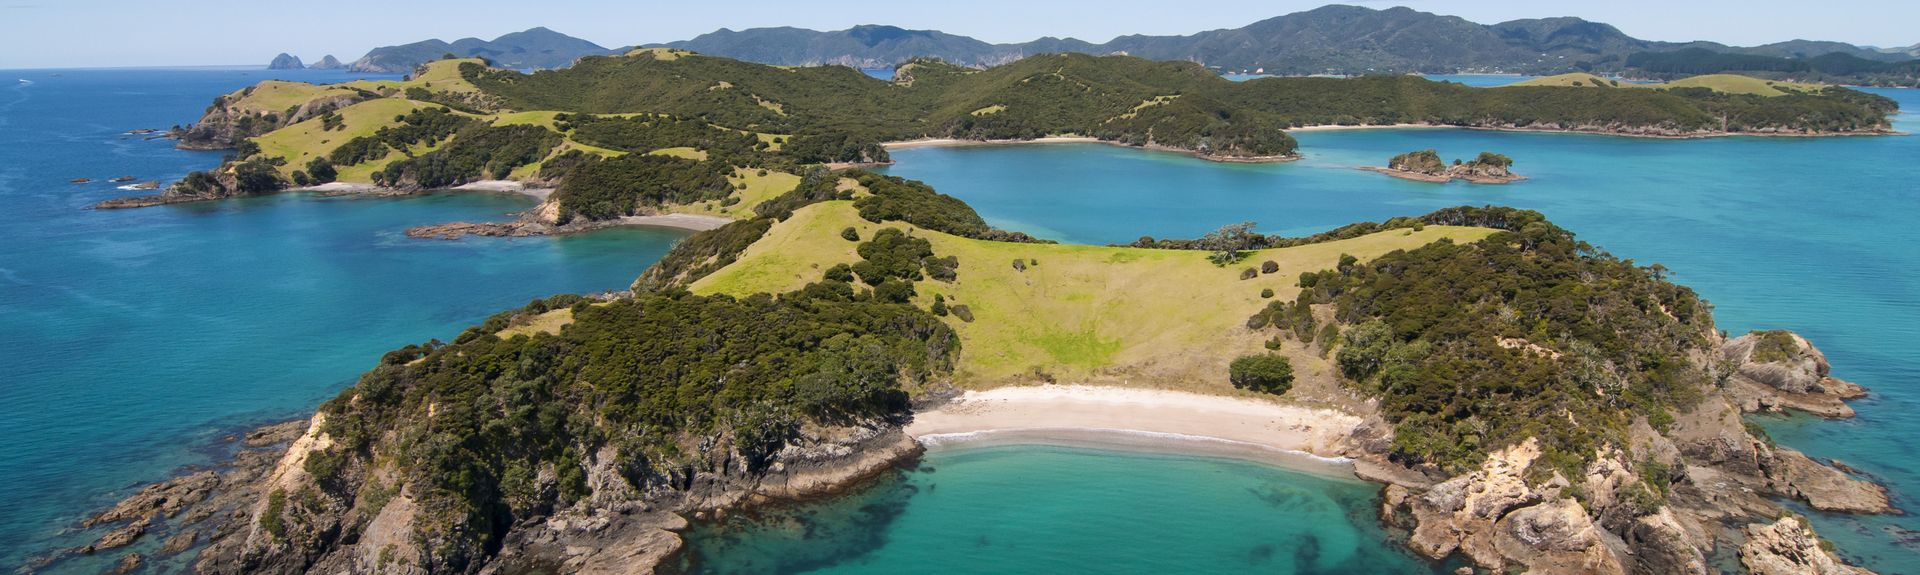 Bay of Islands, Northland, North Island, New Zealand